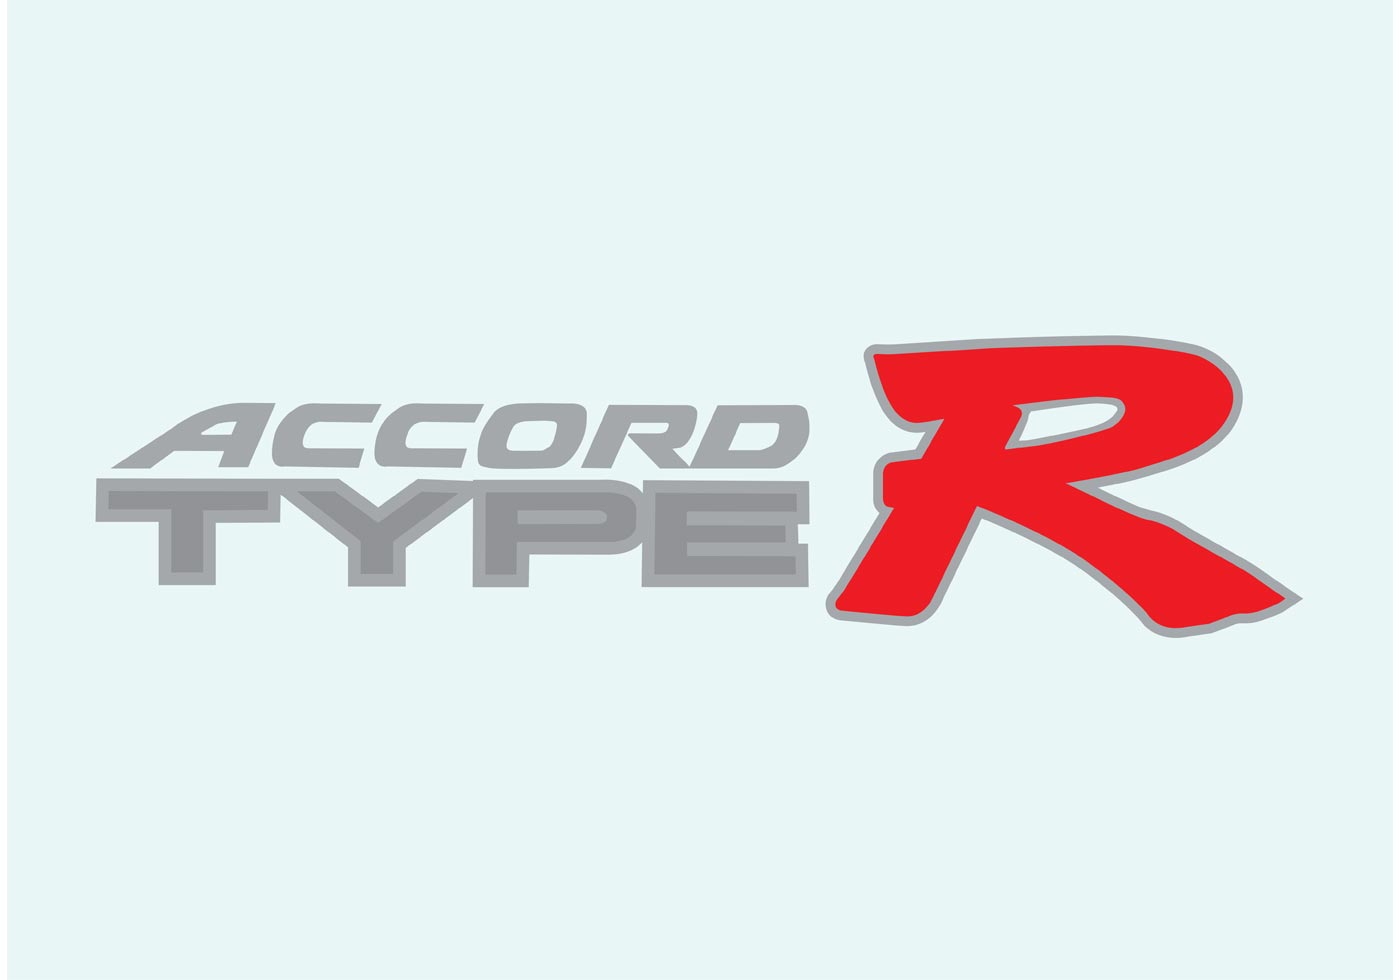 Honda Accord Type R Download Free Vector Art Stock Graphics Amp Images